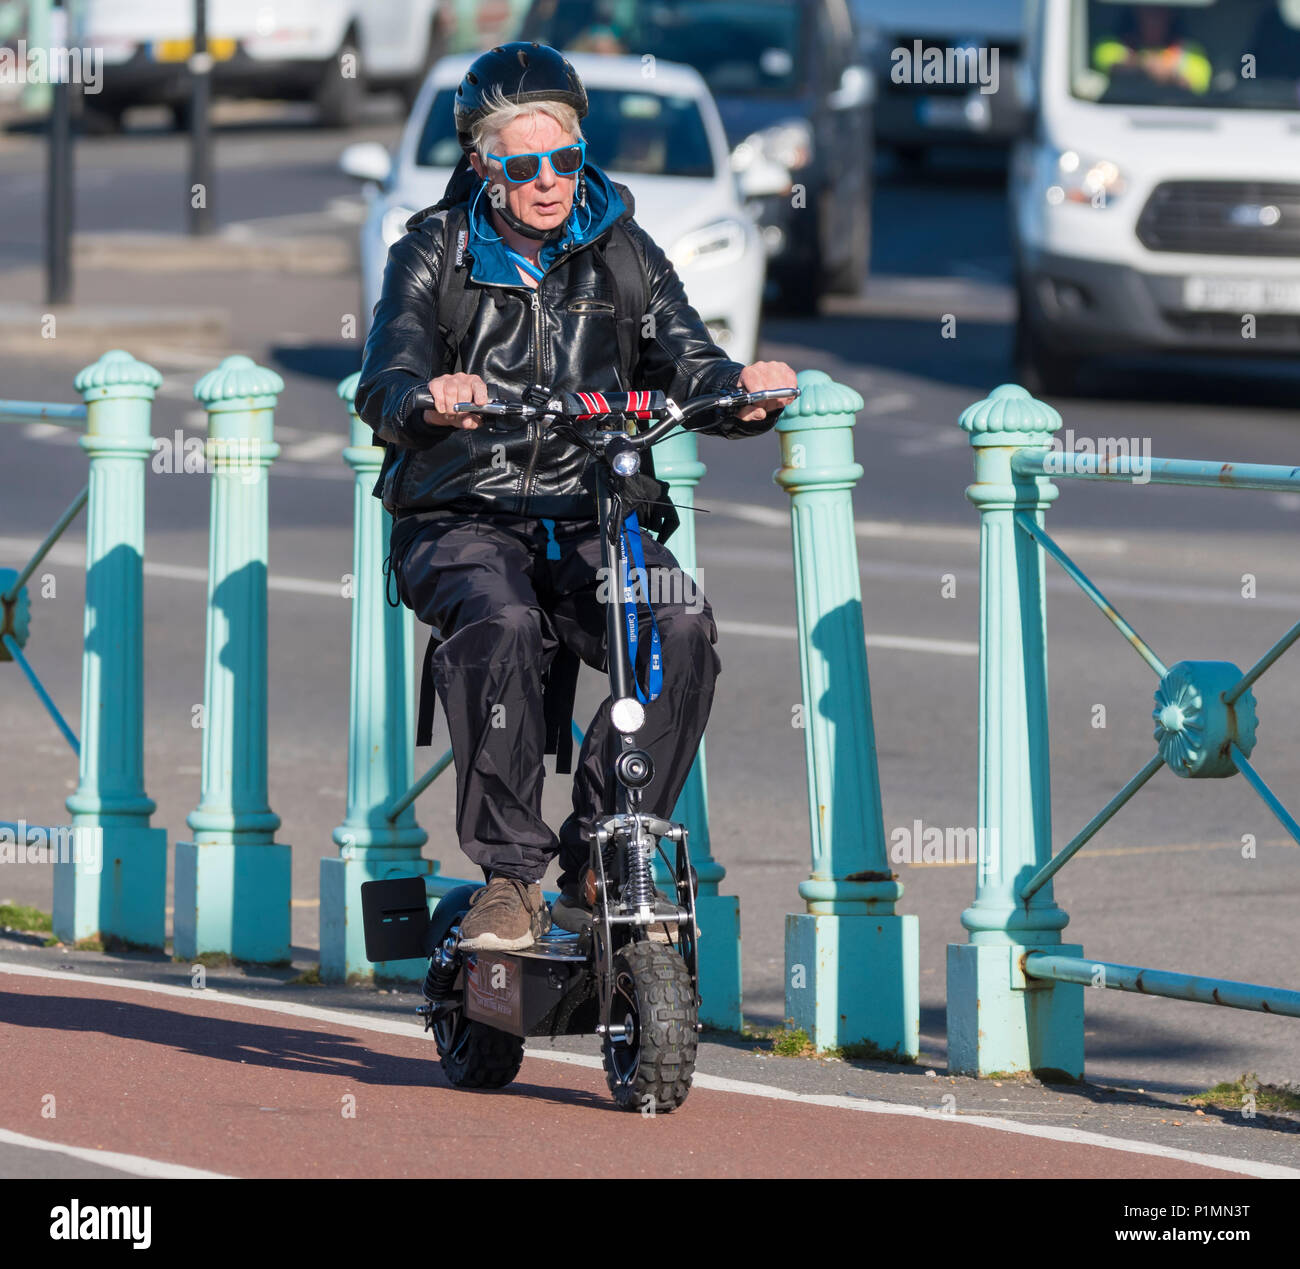 Woman riding a small electric scooter with small wheels in the UK. - Stock Image